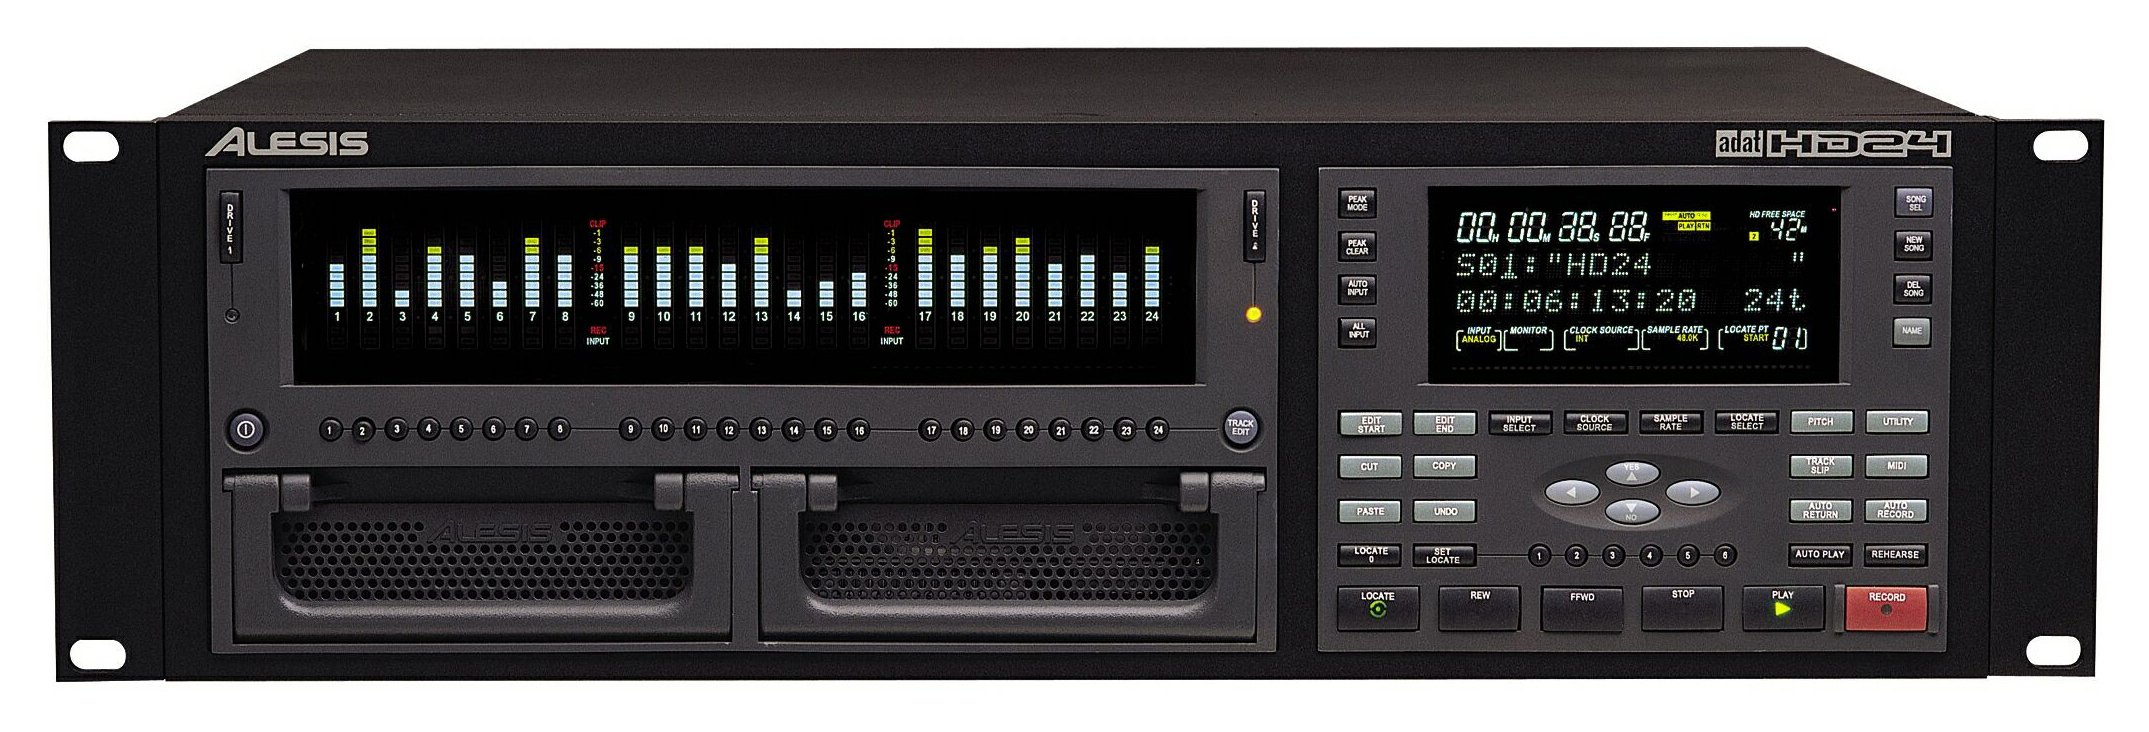 Alesis Adat Hd 24 Track Hard Disk Recorder Cps